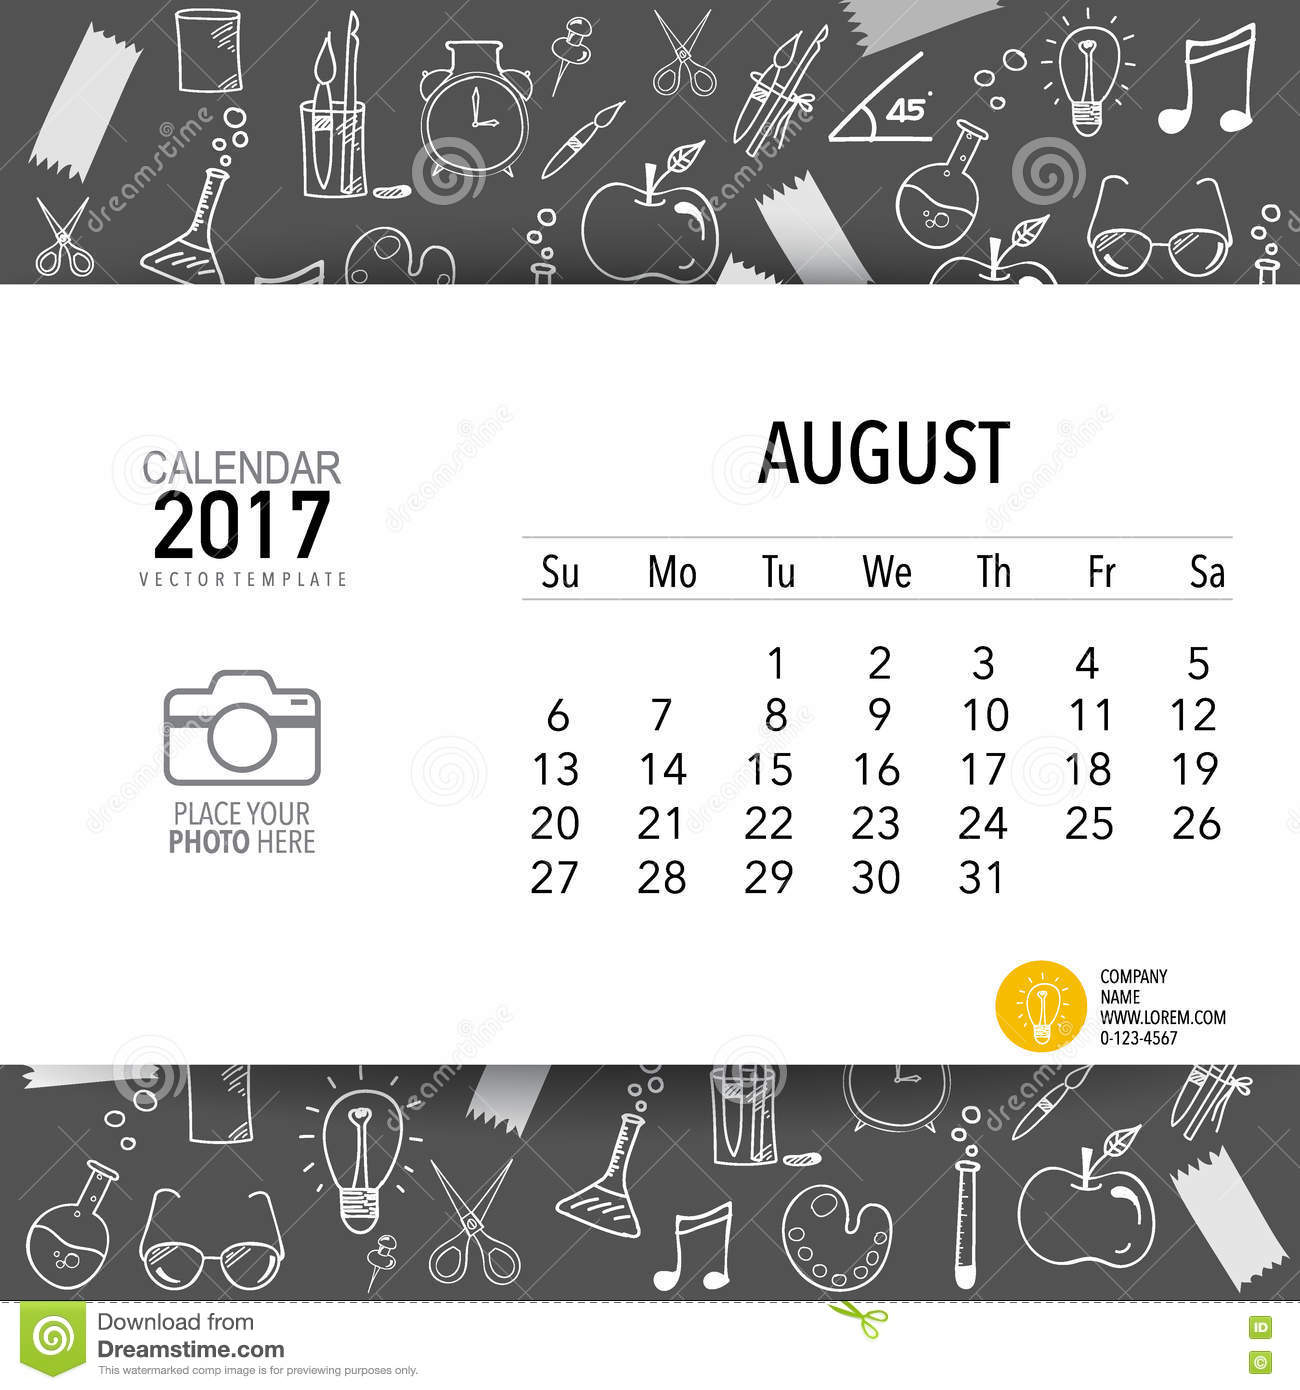 Quarterly Calendar Design : Monthly calendar template picture pictures